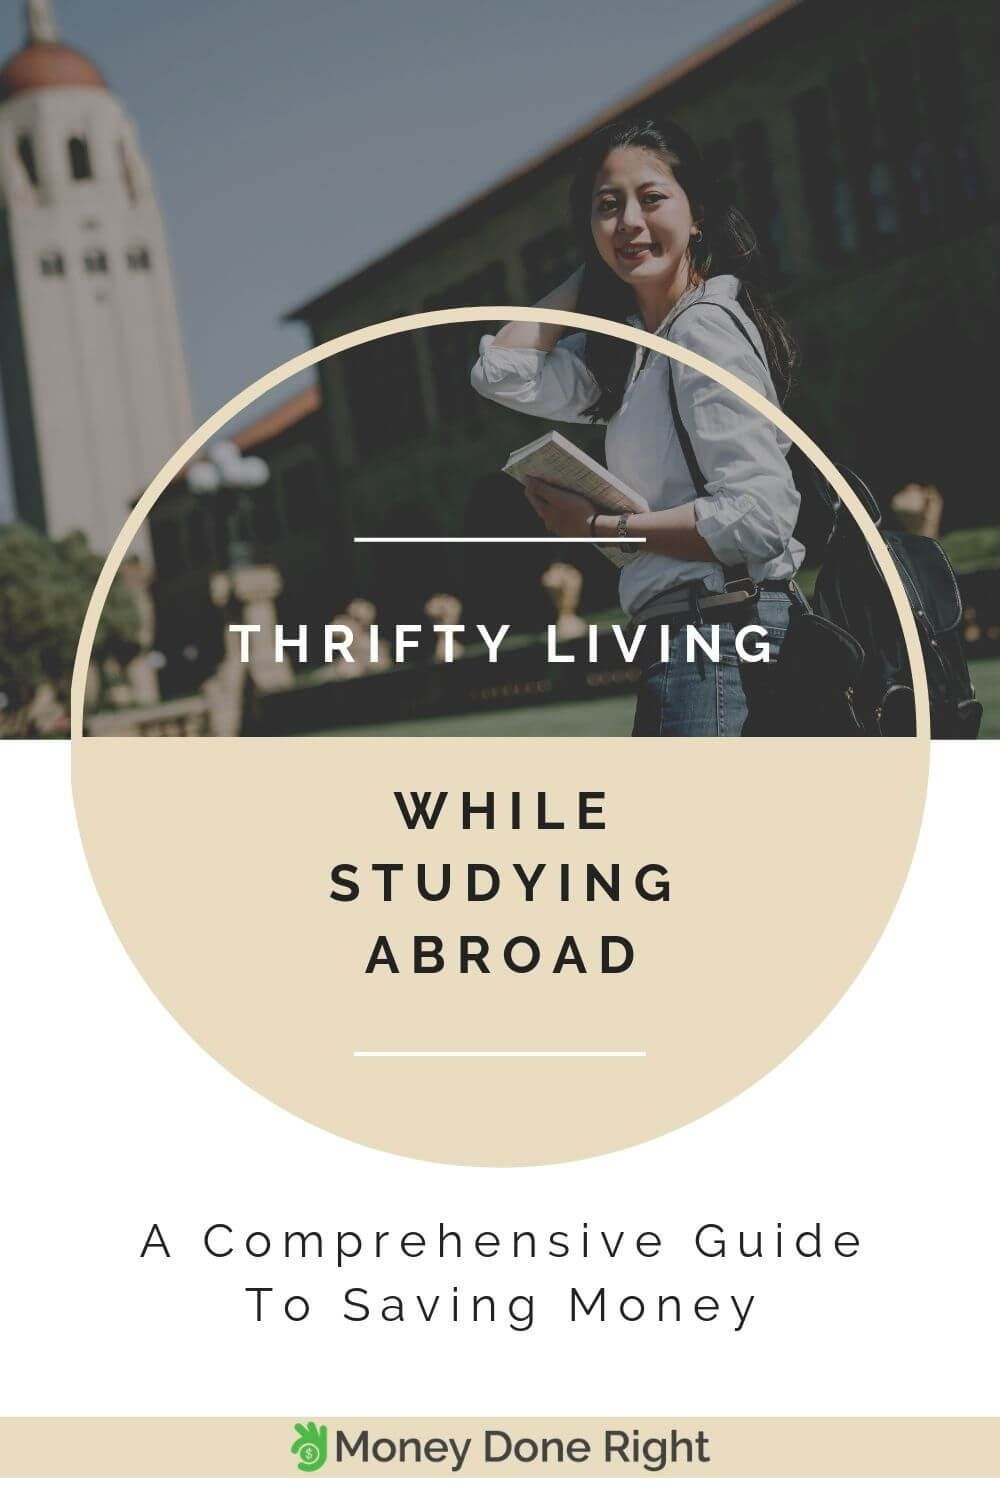 How to Save Money While Studying Abroad The Ultimate